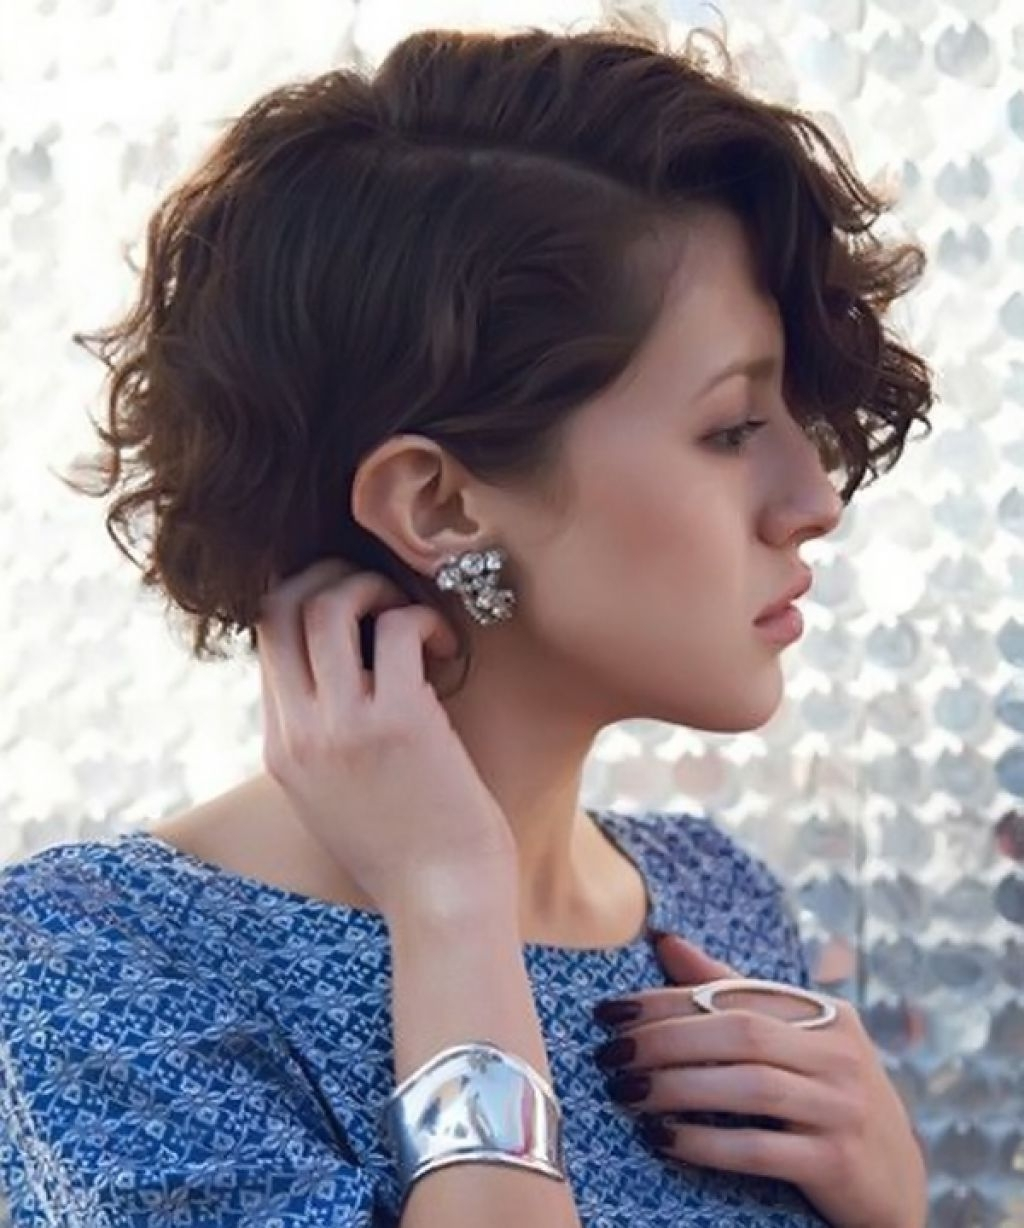 Hairstyles For Heart Shaped Faces Curly Hair This Style Is Curly With Regard To Current Pixie Hairstyles For Heart Shaped Face (View 10 of 15)